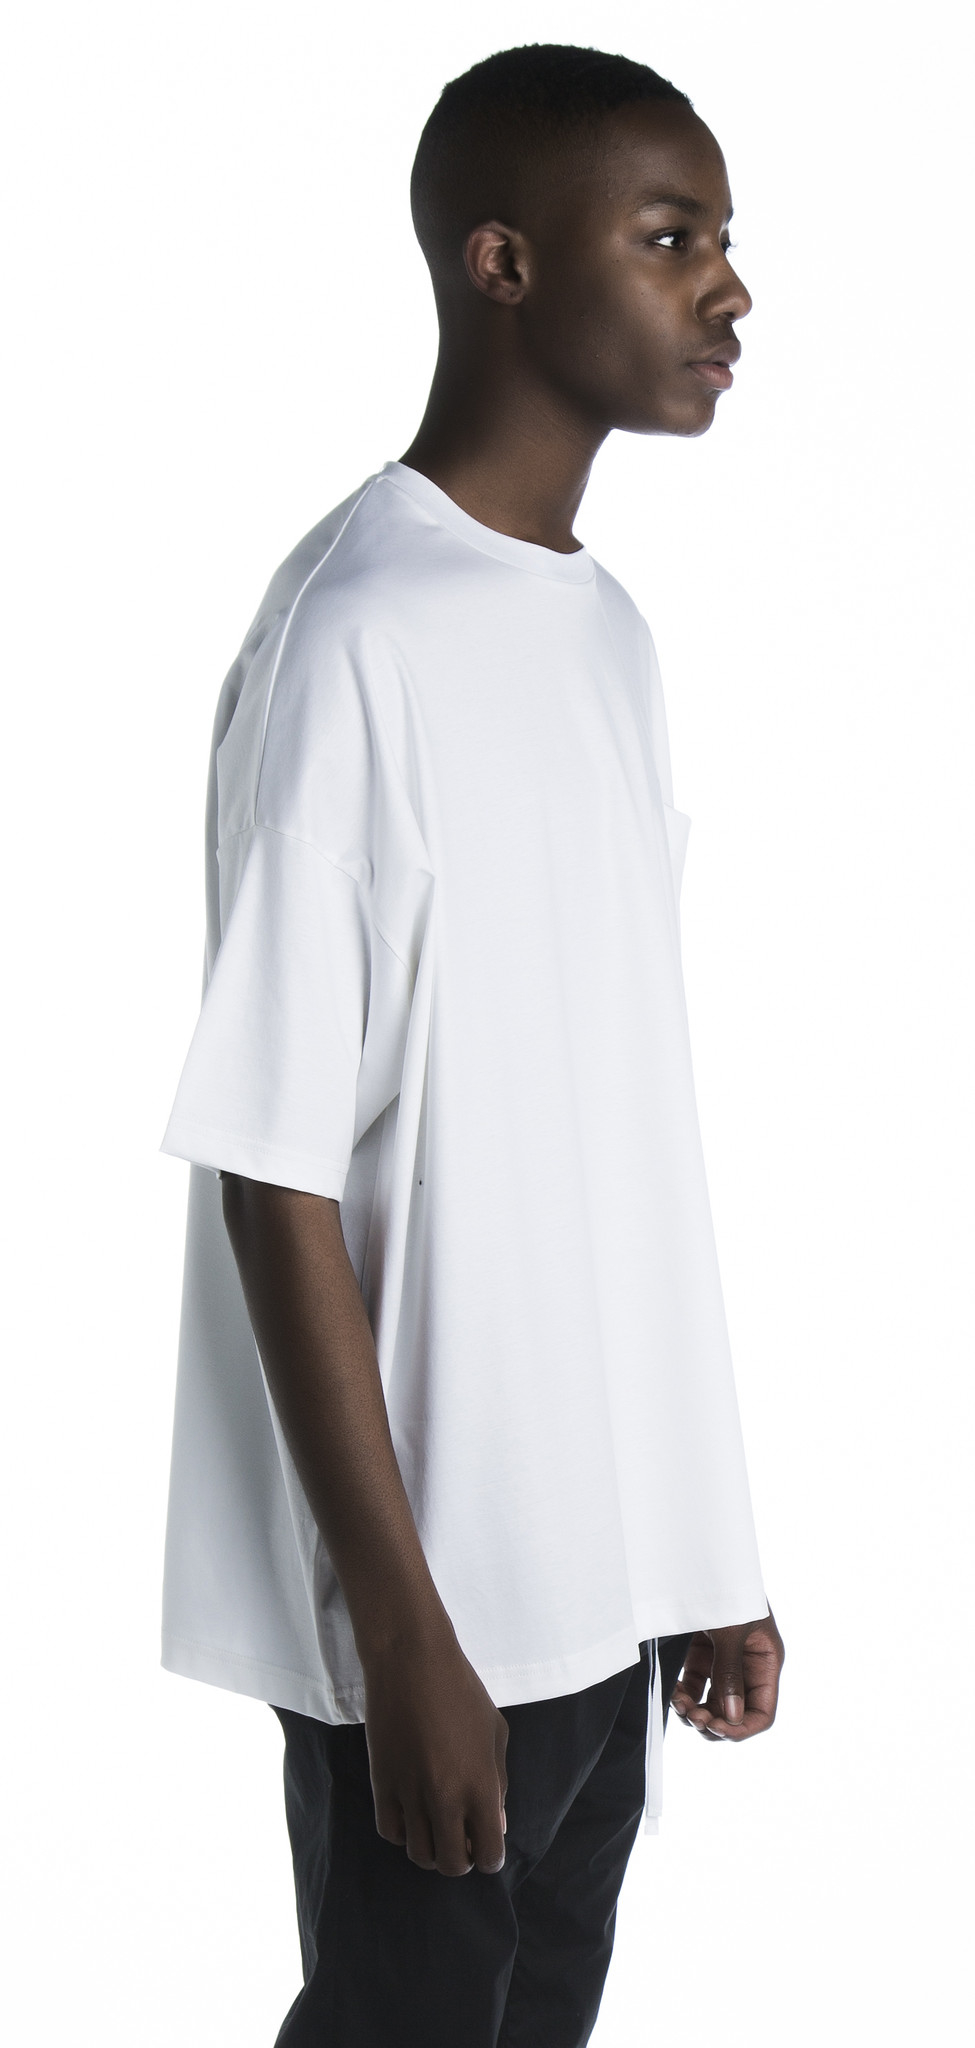 Learn More about White T-Shirts